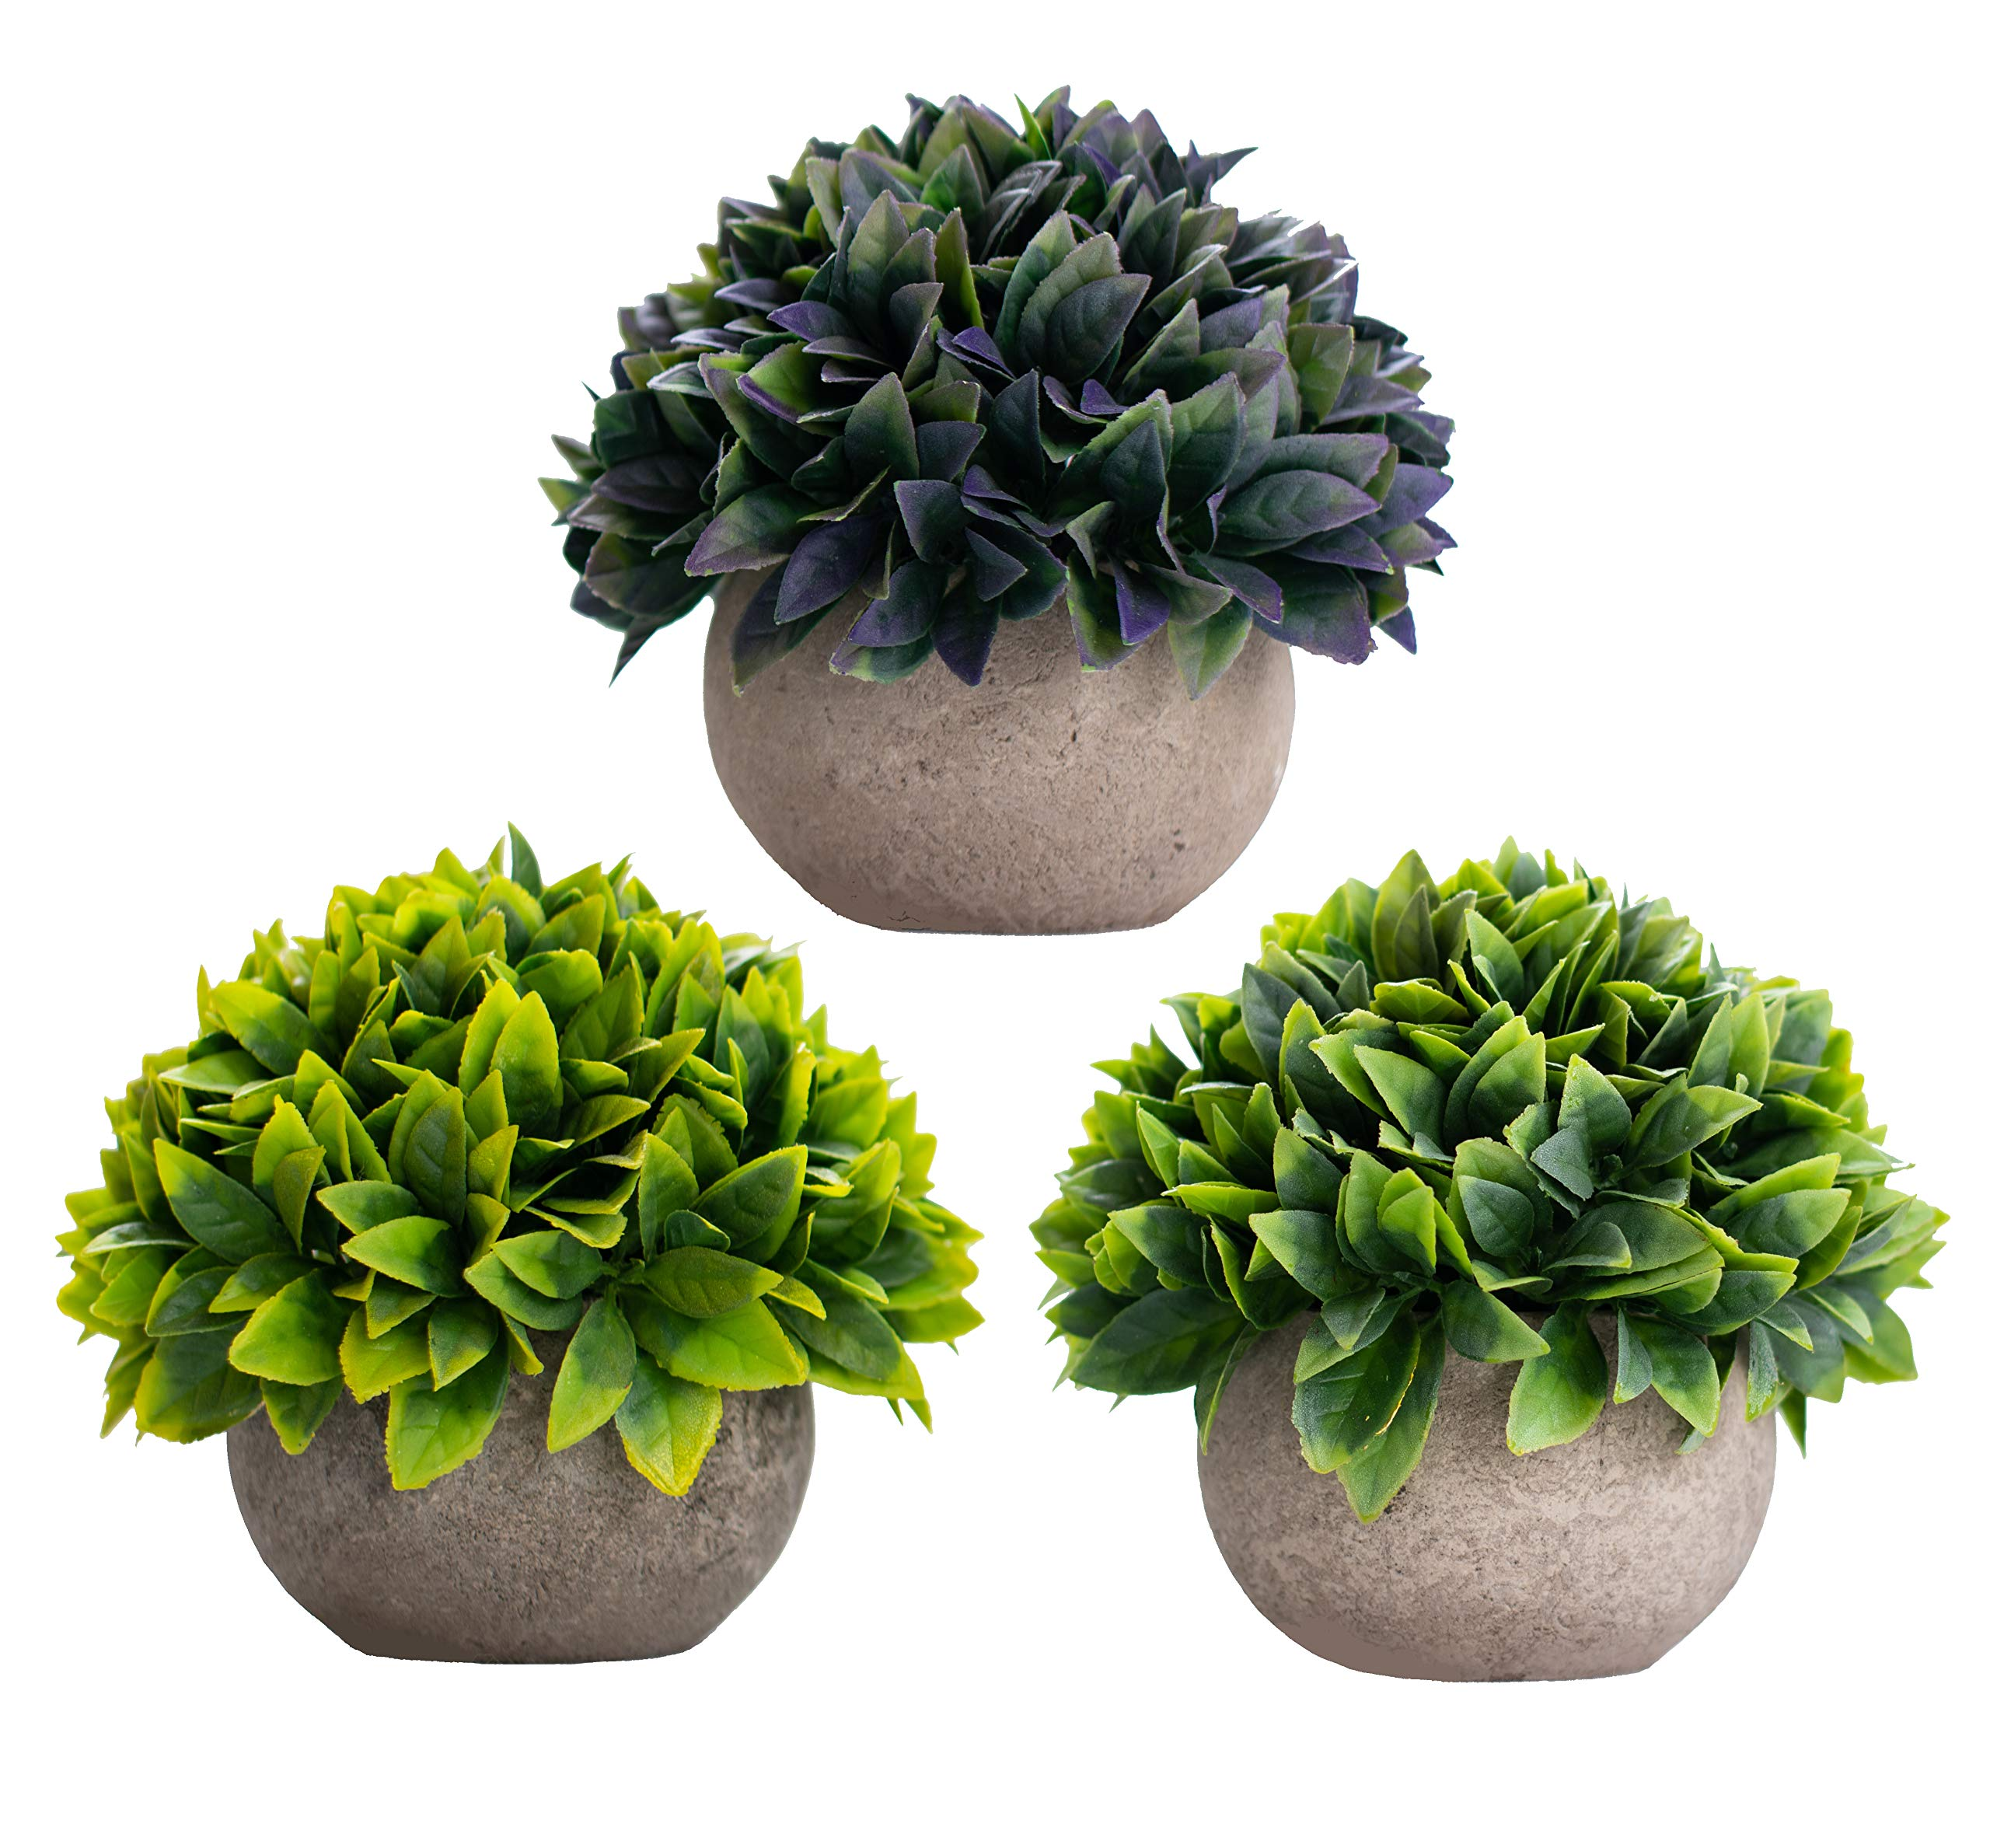 Artificial Fake Plants Decor - Small Faux Succulent Cactus Plant Tree Decorations For Rustic Home, Wall, Bedroom, Bathroom, Farmhouse, Mantle Shelf, Living Room, Kitchen, House, Terrarium, Indoor Pot